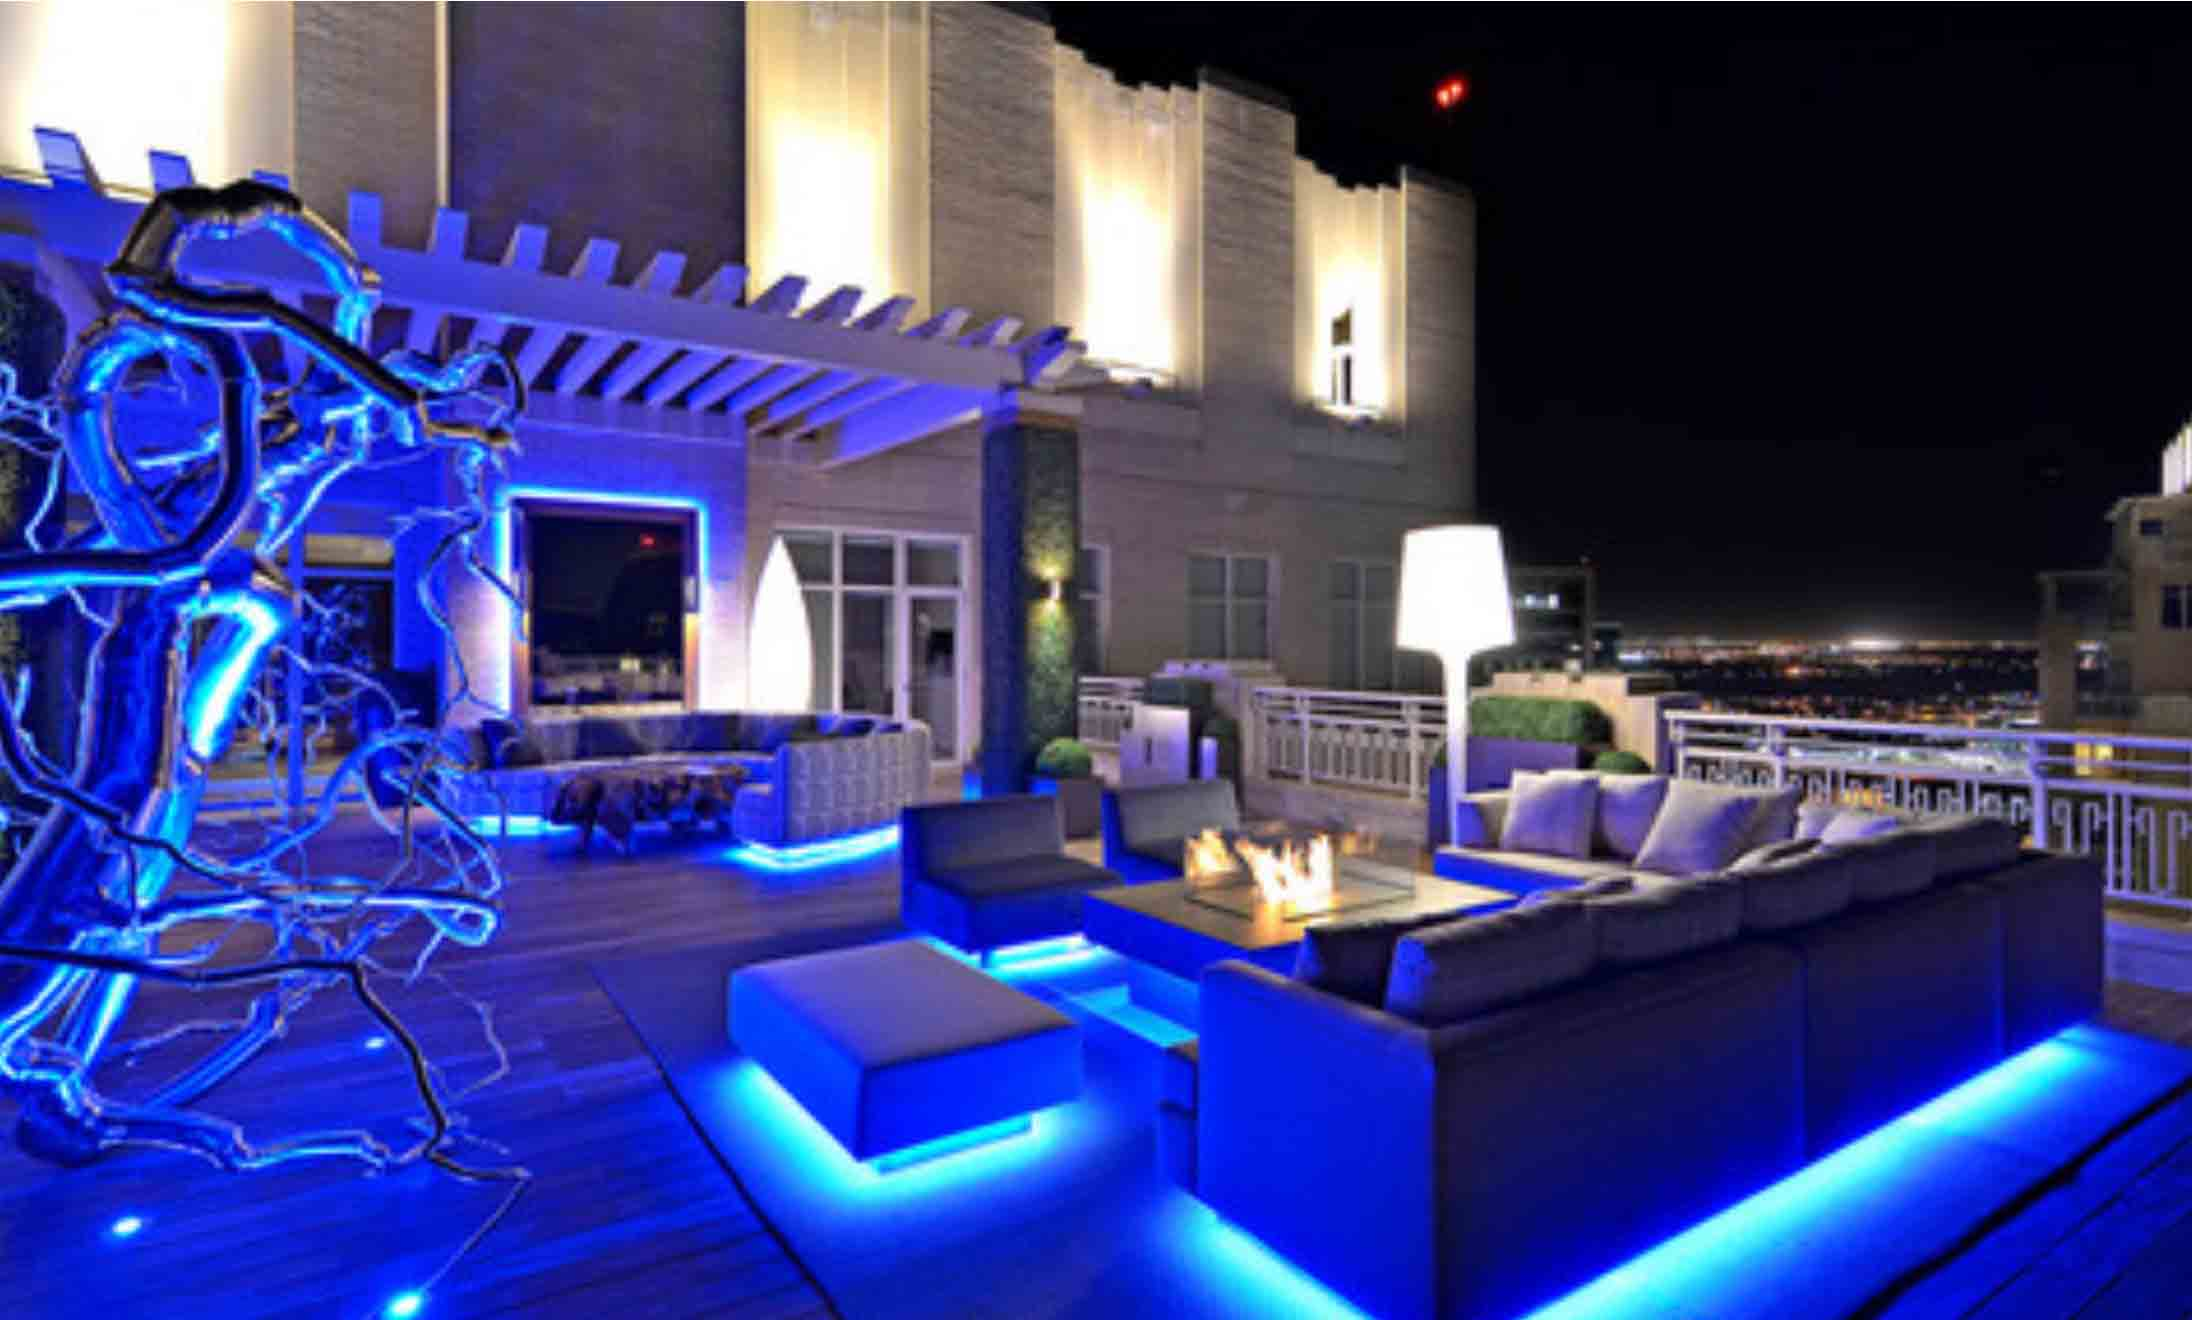 Garden Lighting Ideas : Best Patio, Garden, and Landscape Lighting Ideas for 2014  @Qnud